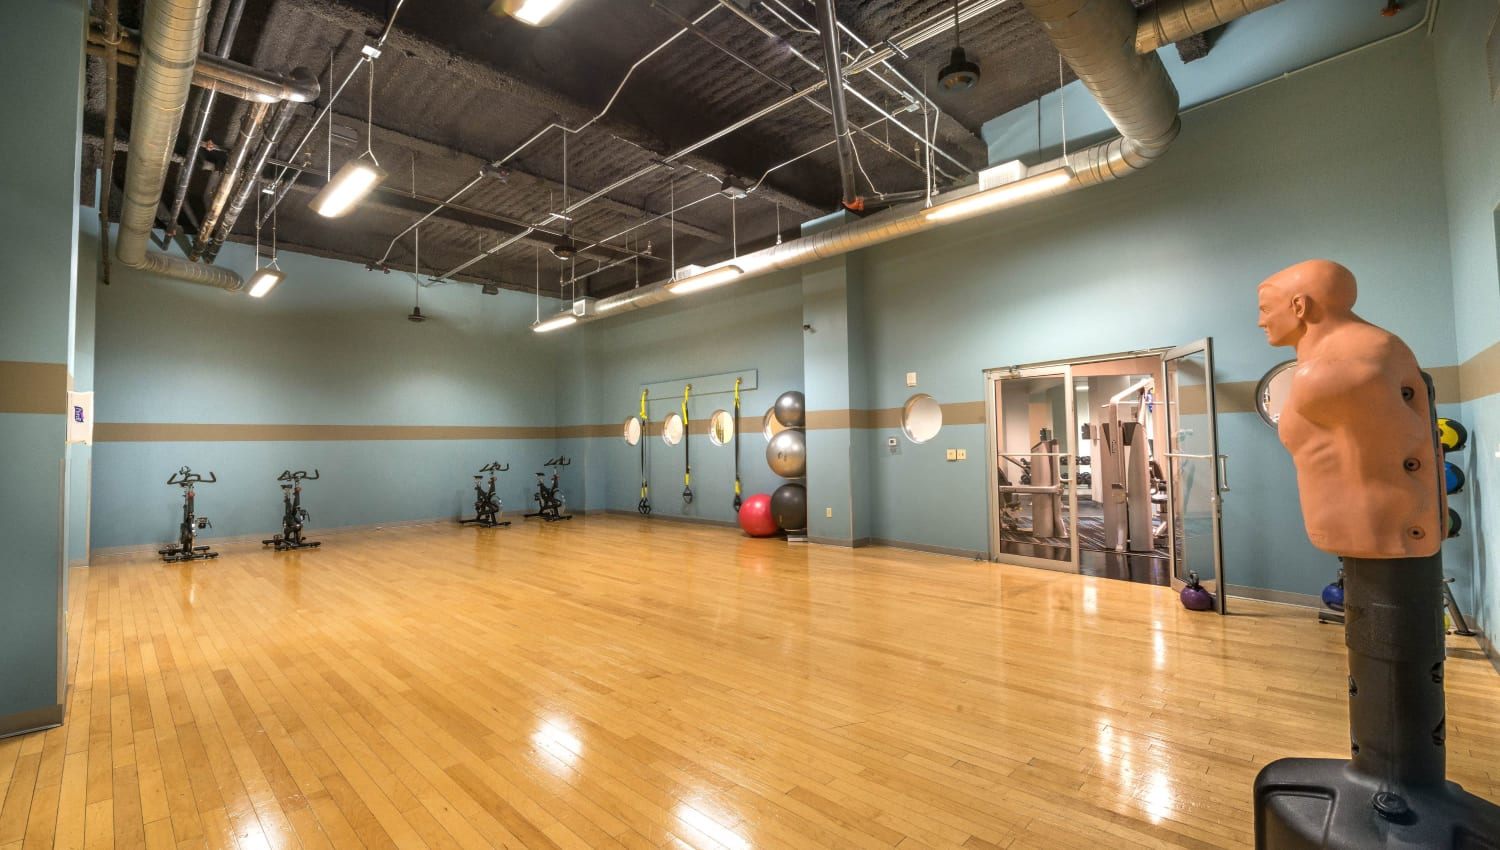 State-of-the-art fitness center at Mosaic Dallas in Dallas, Texas